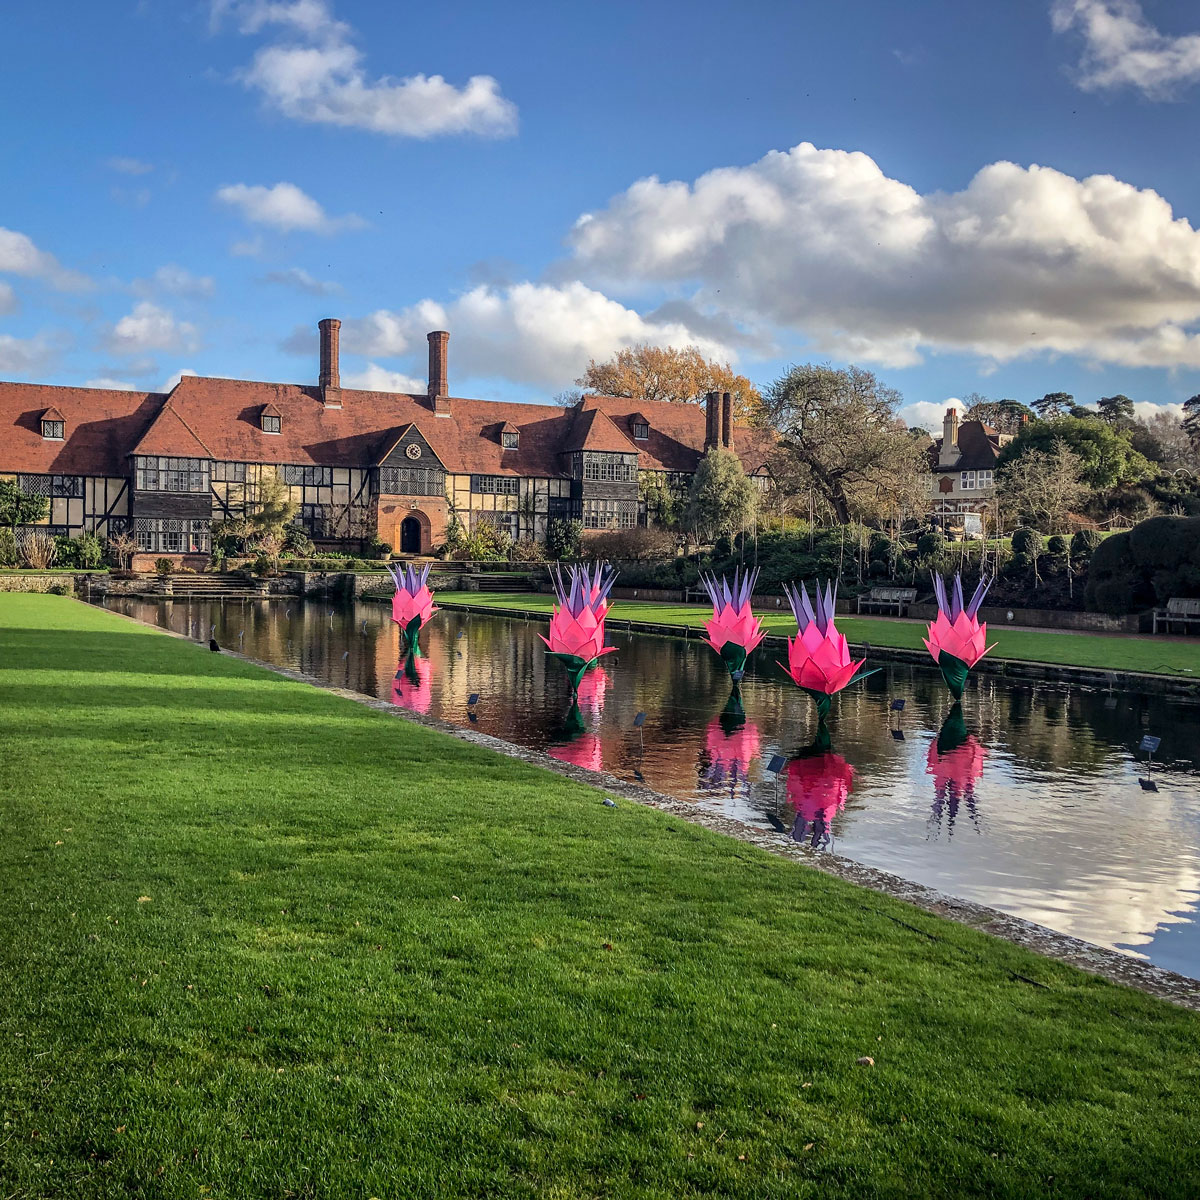 The Royal Horticultural Society's Wisley Glow 2018. RHS Wisley laboratory and Jellicoe canal with water lilies